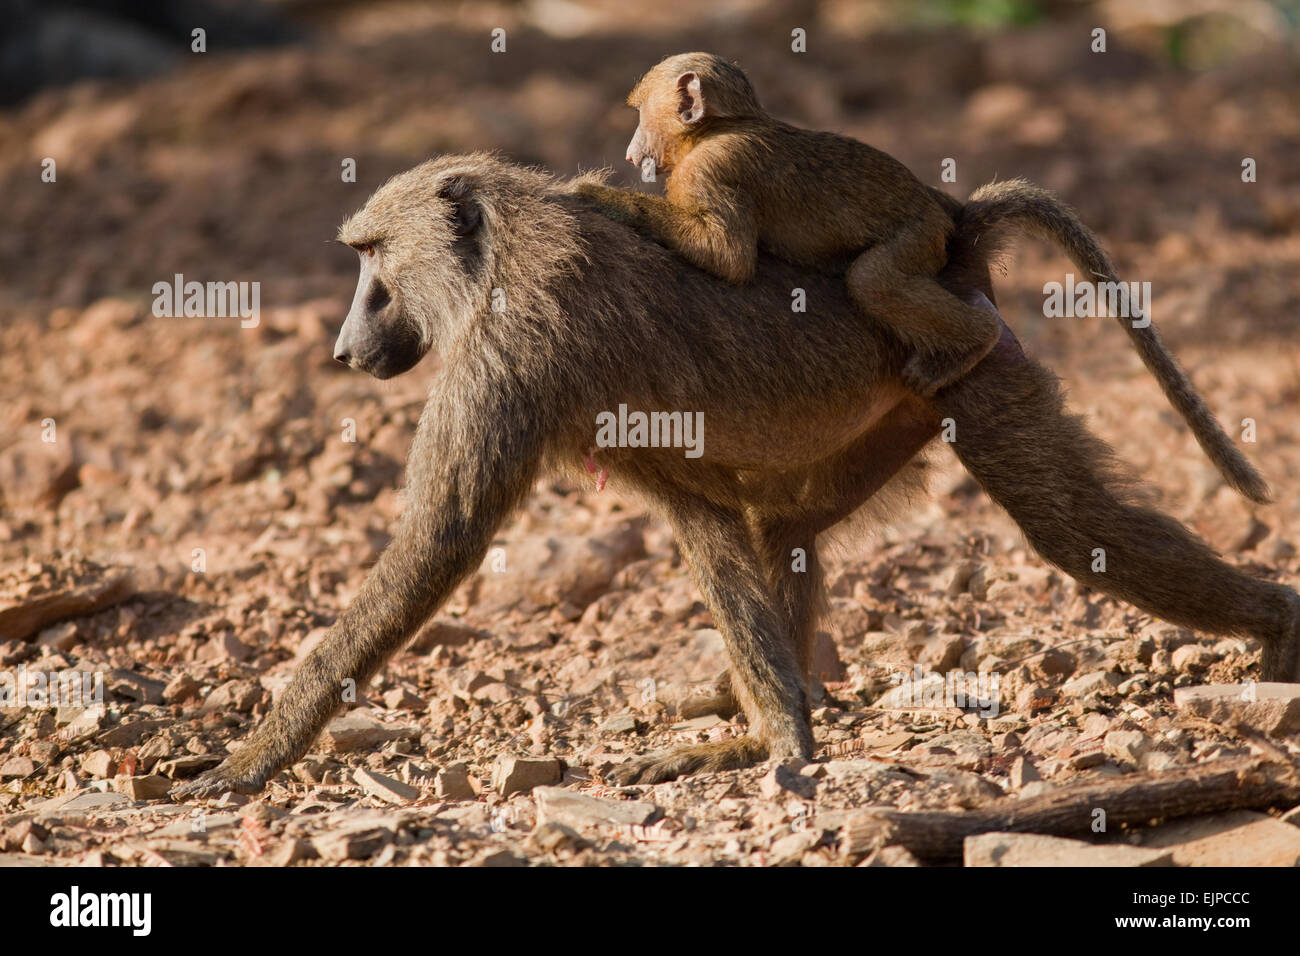 Olive or Anubis Baboons (Papio anubis). Female and young. Ghana. West Africa. Mole National Park. - Stock Image